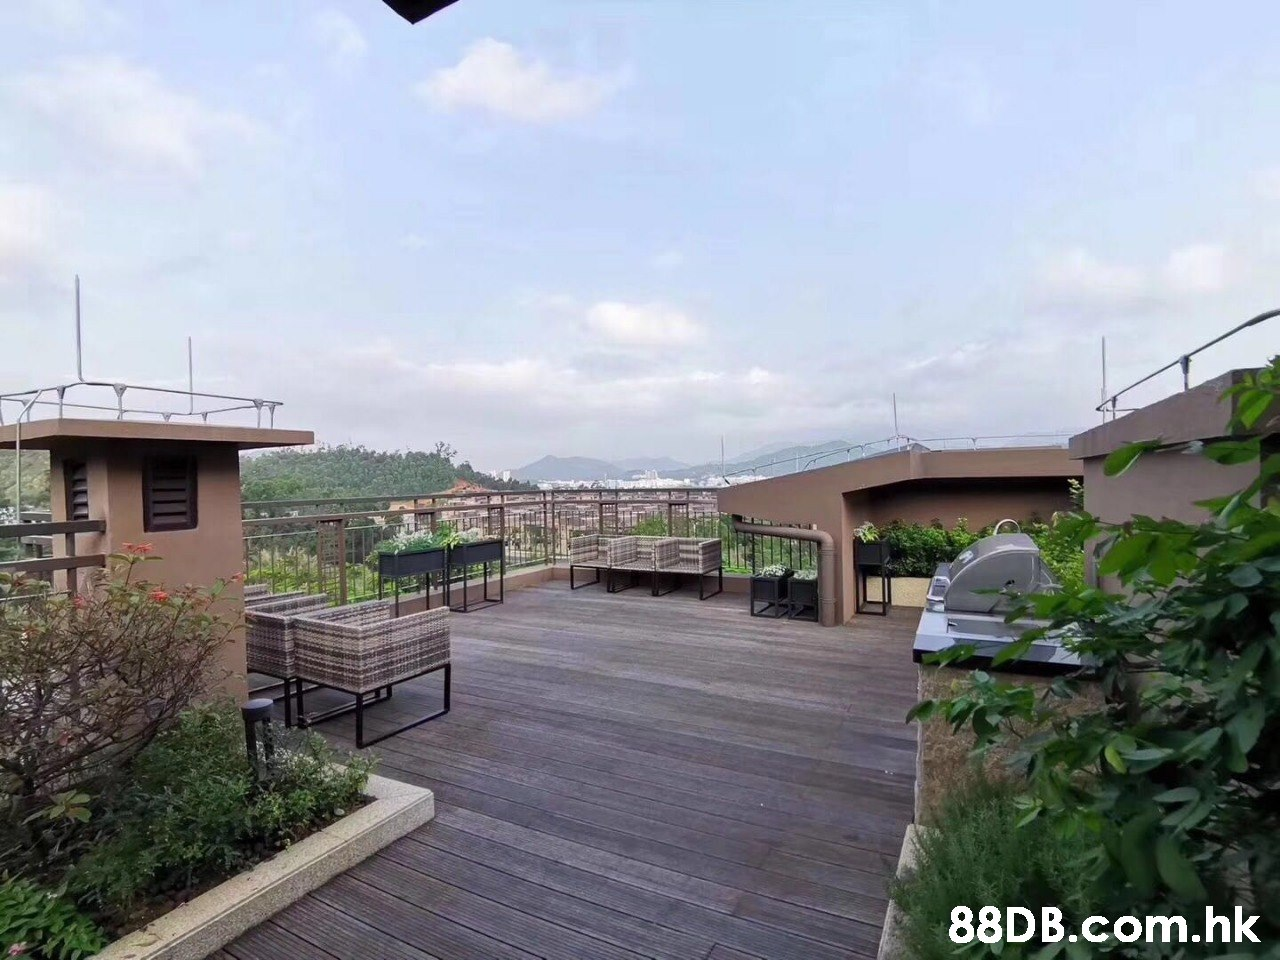 .hk  Property,Real estate,Building,House,Residential area